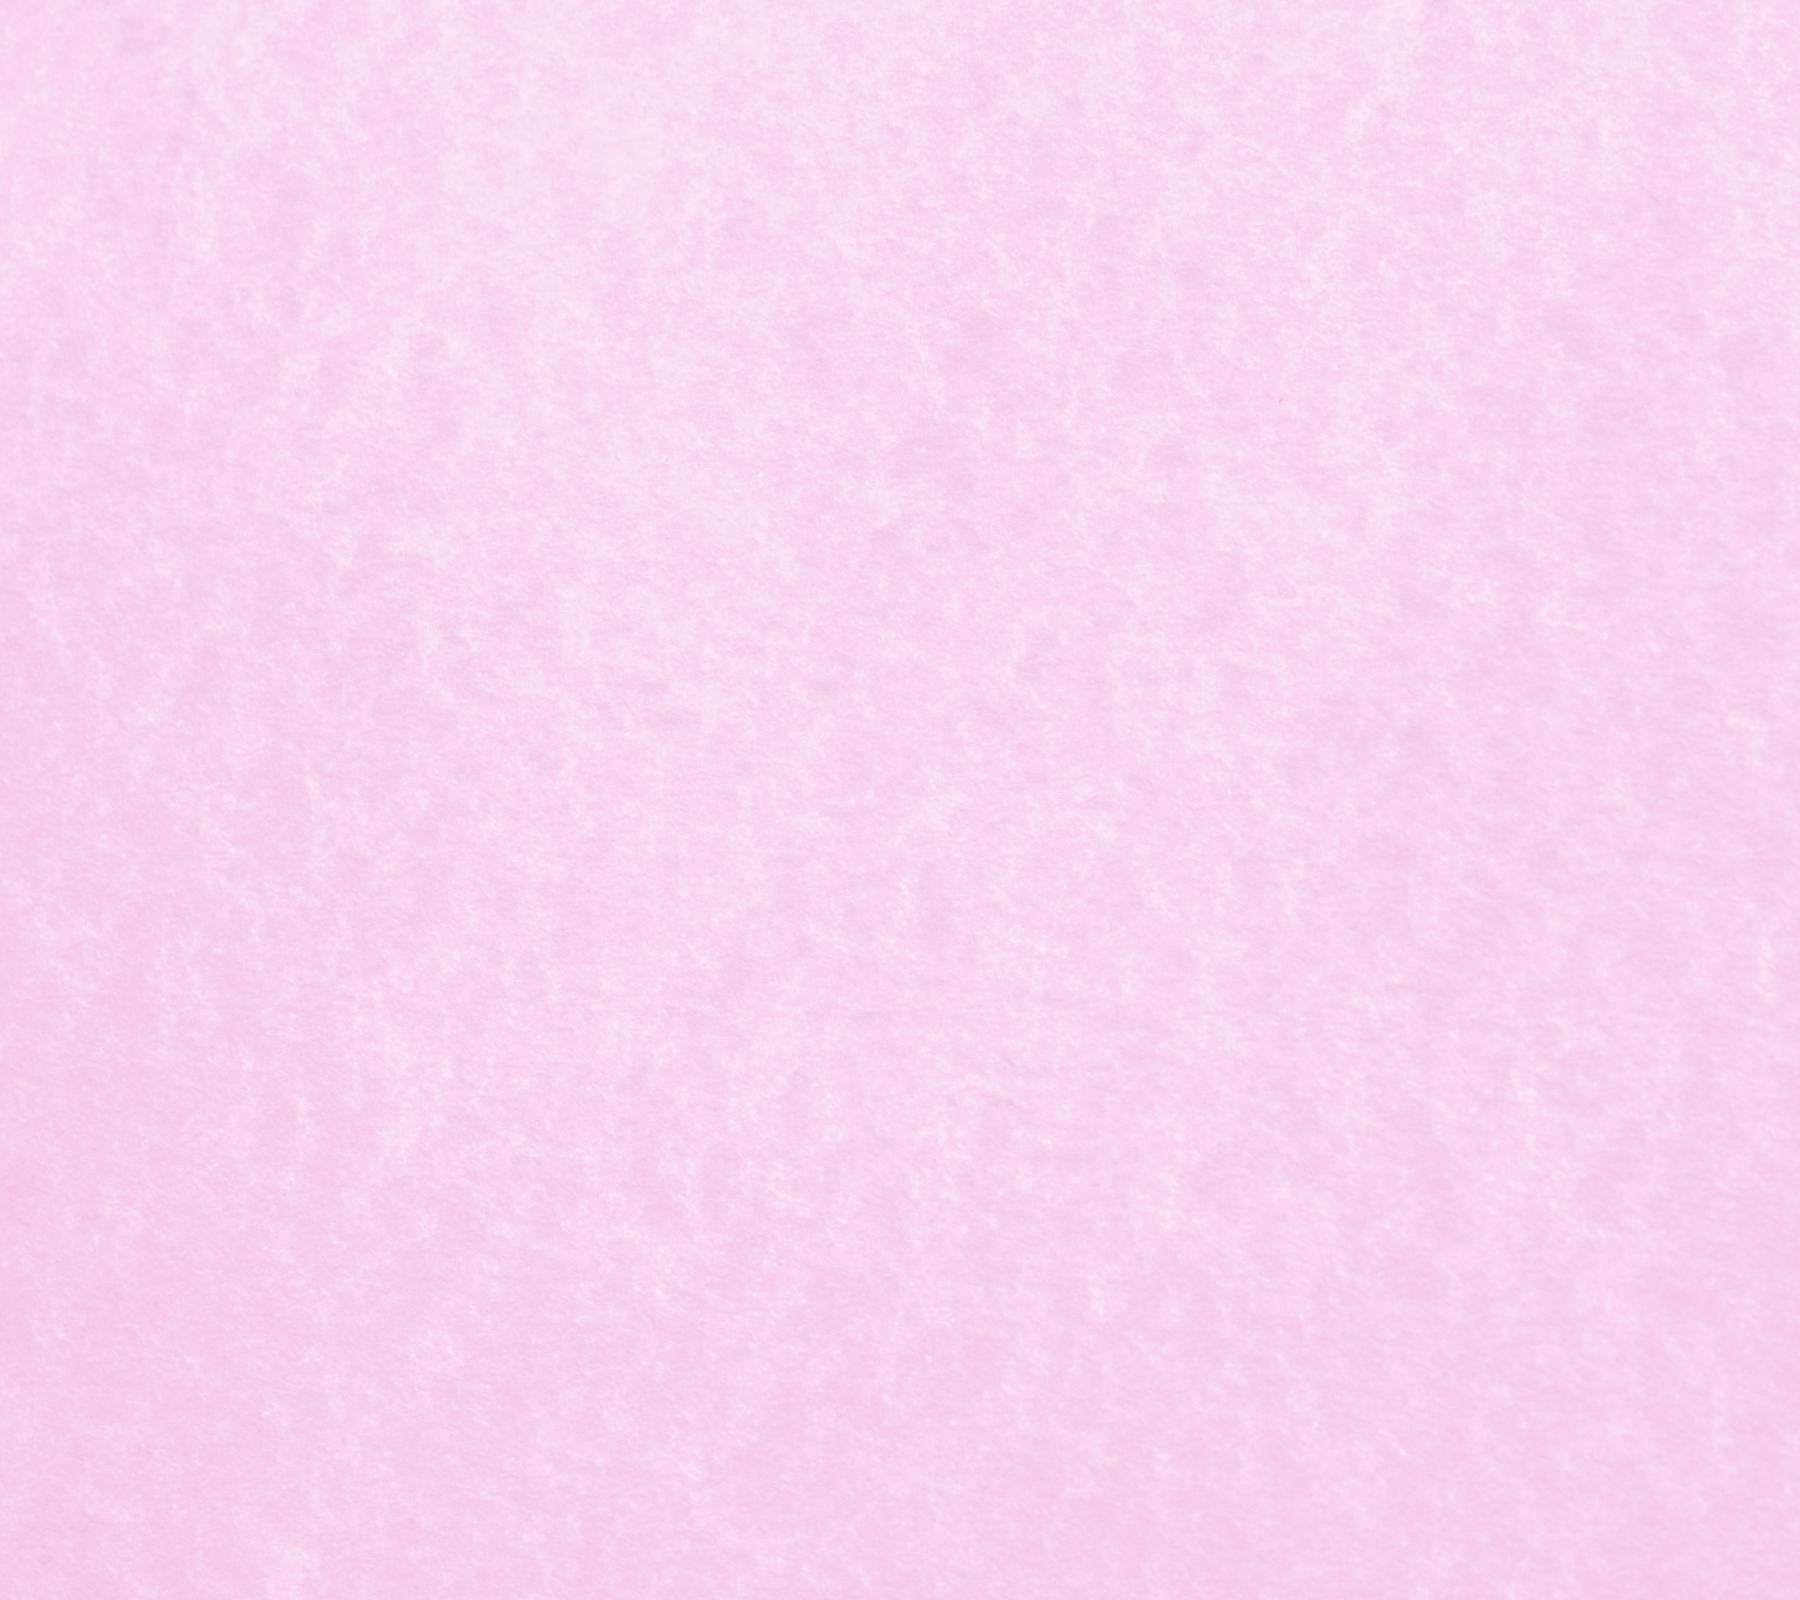 Light Pink Parchment Paper Background 1800x1600 Background 1800x1600